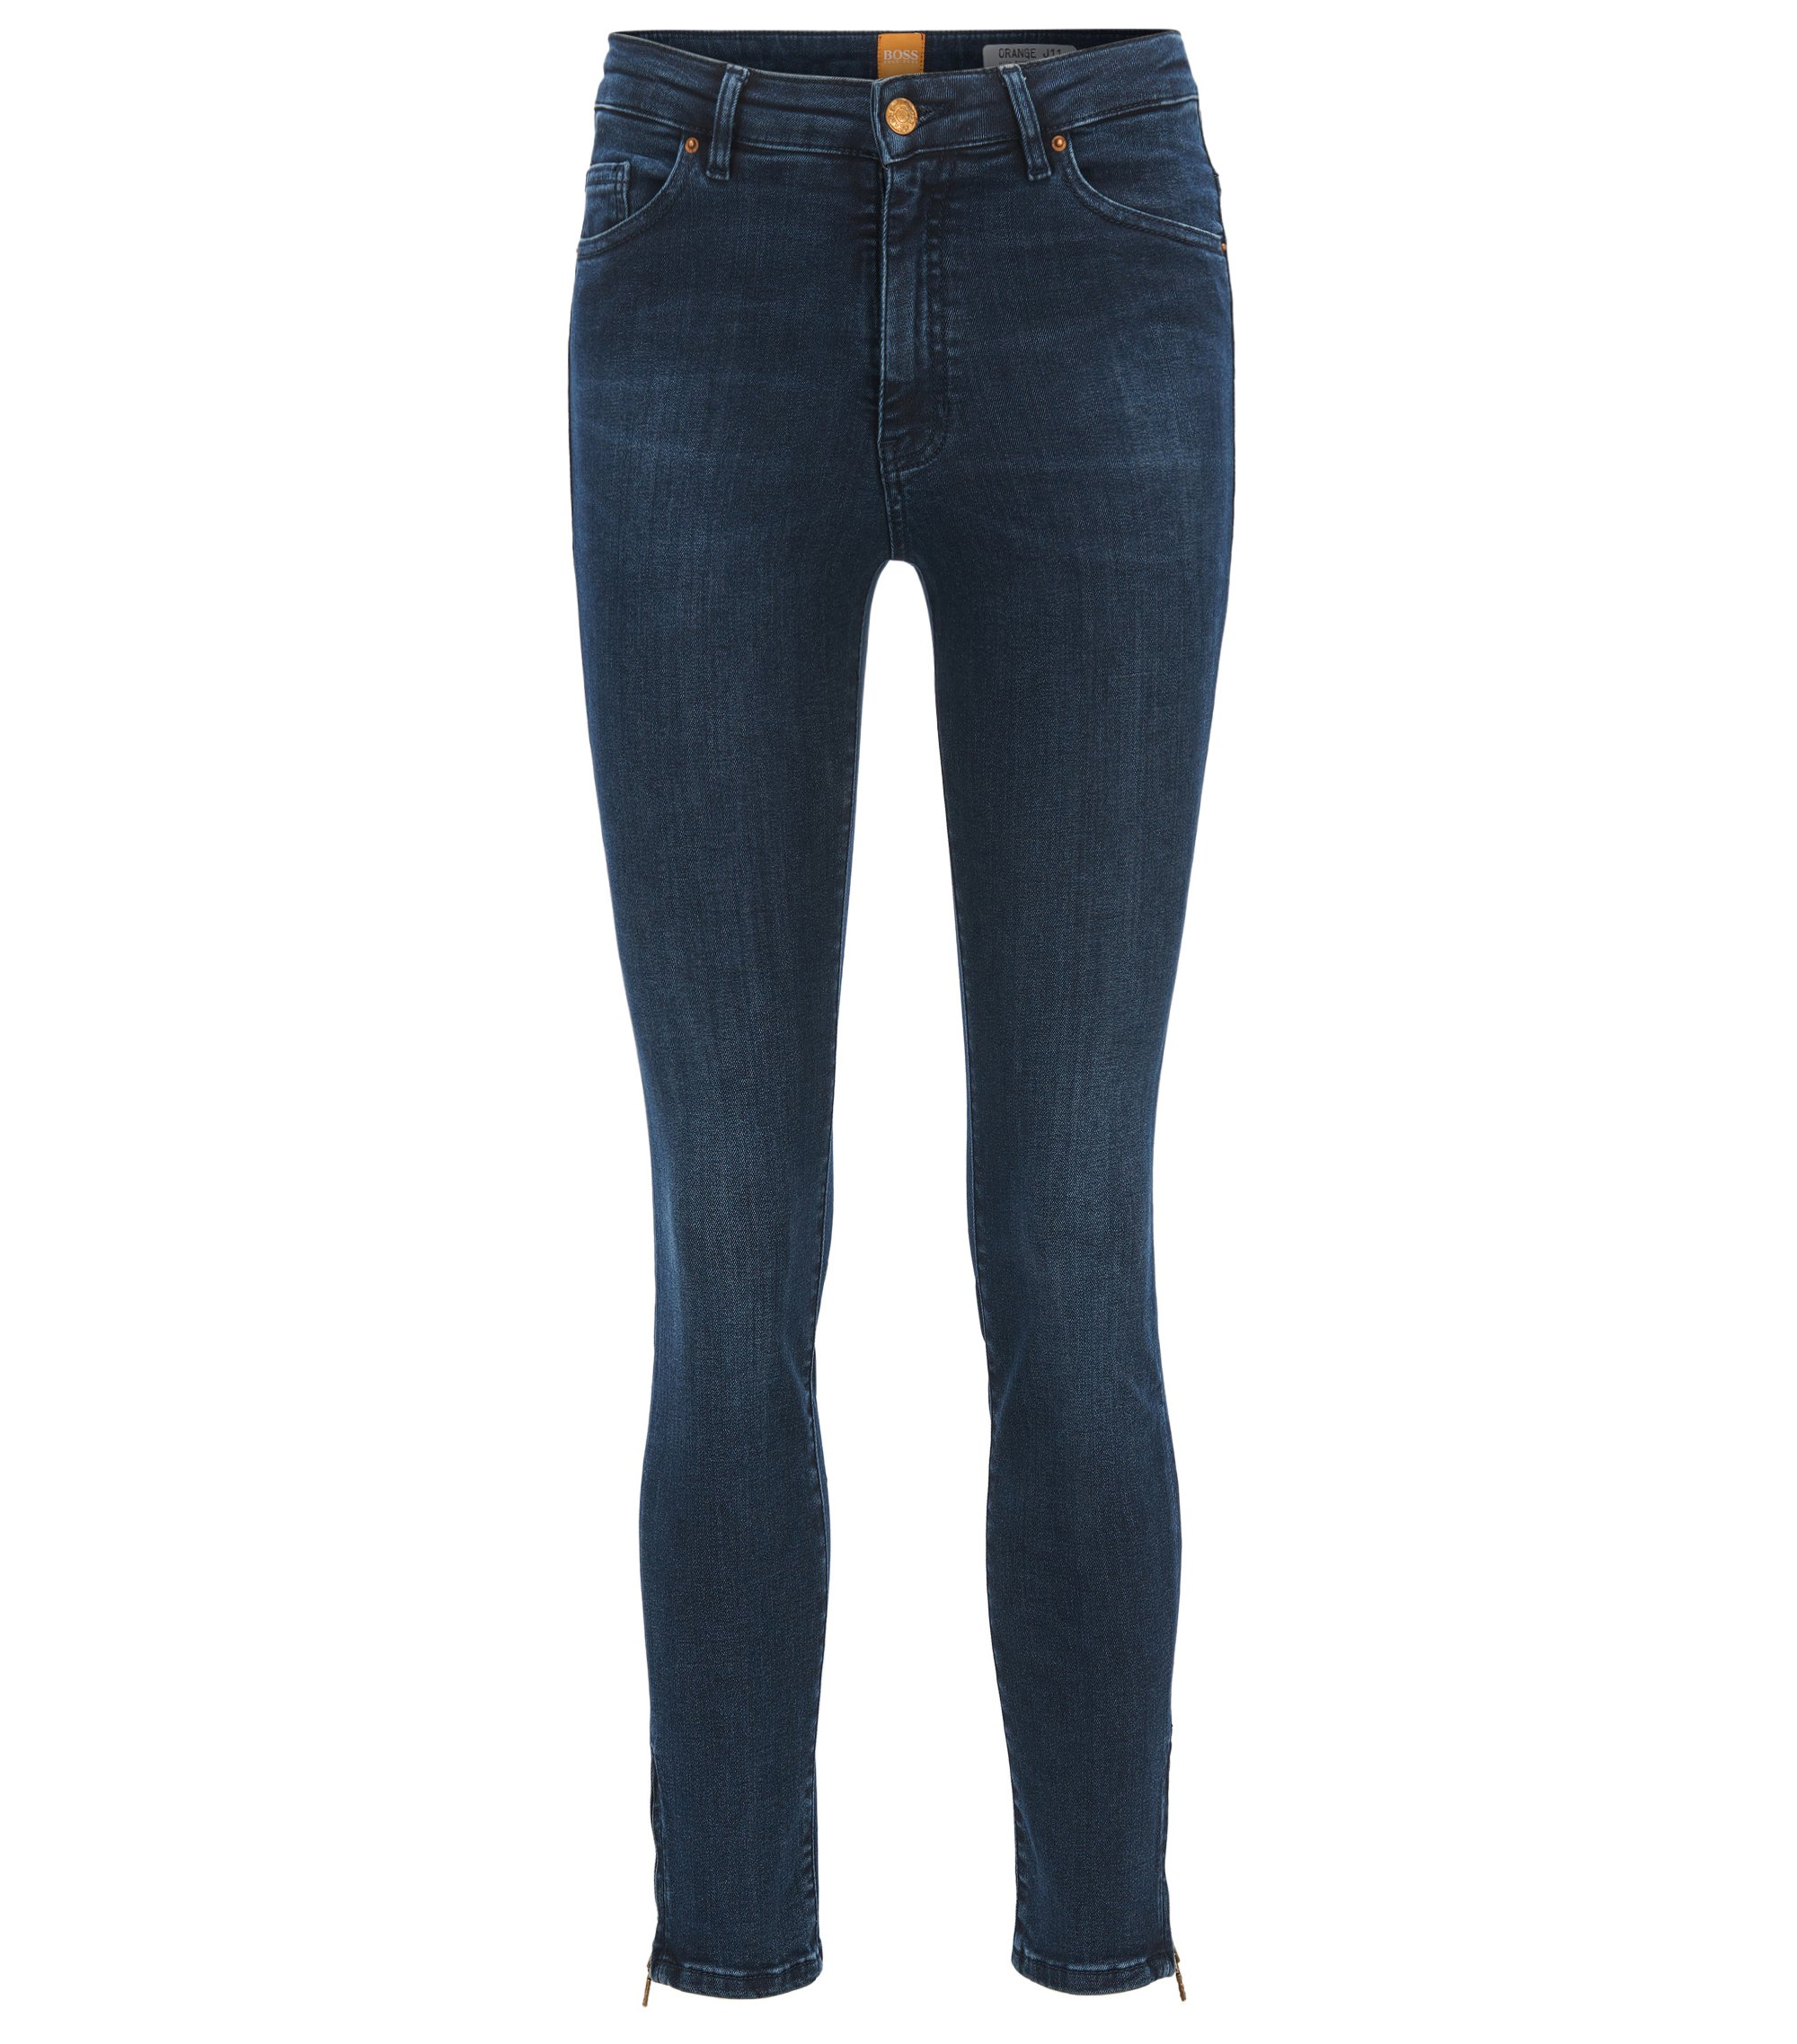 Skinny-fit jeans in power-stretch denim, Dark Blue